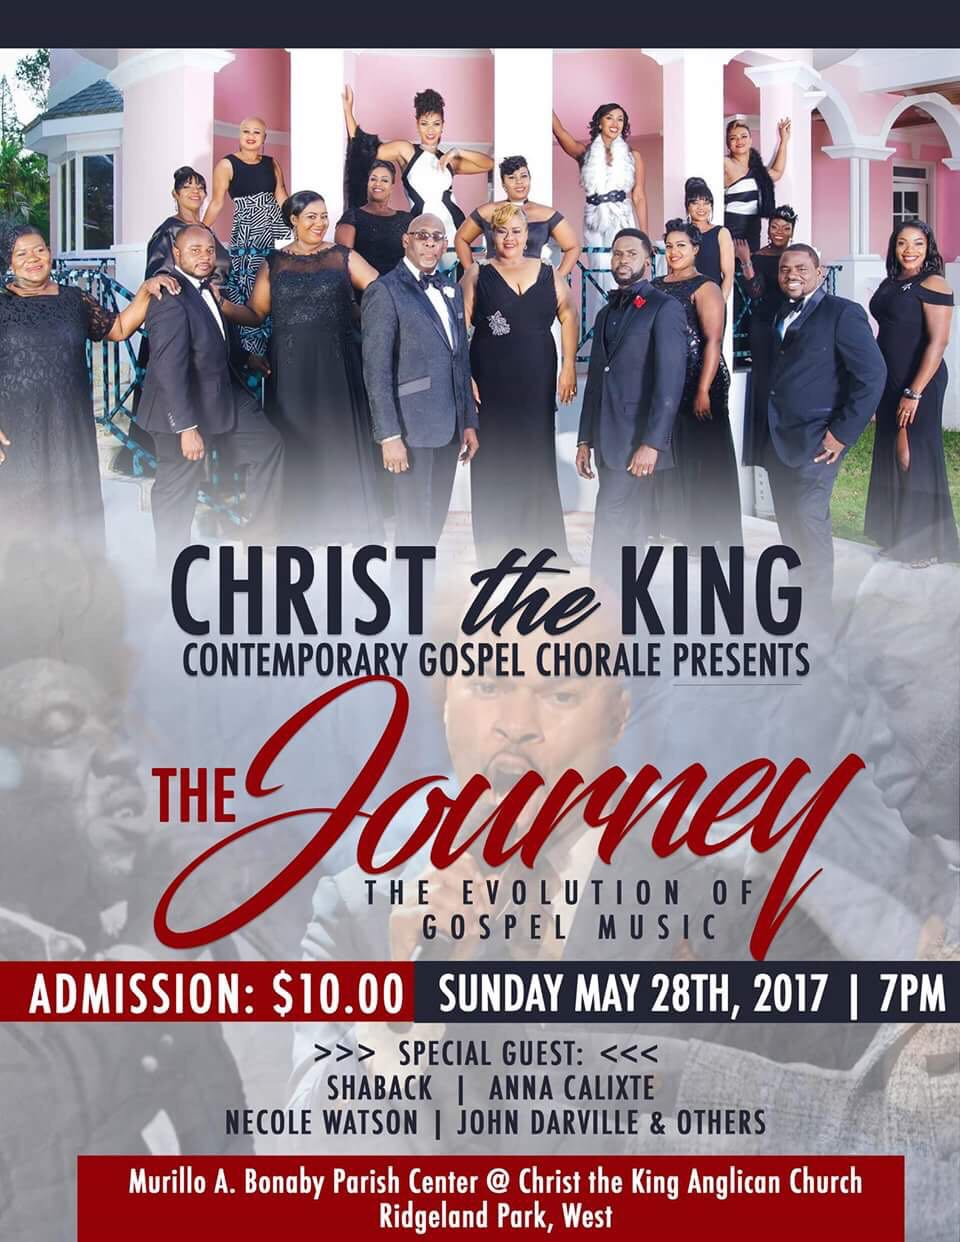 Christ the King Contemporary Gospel Chorale presents The Journey